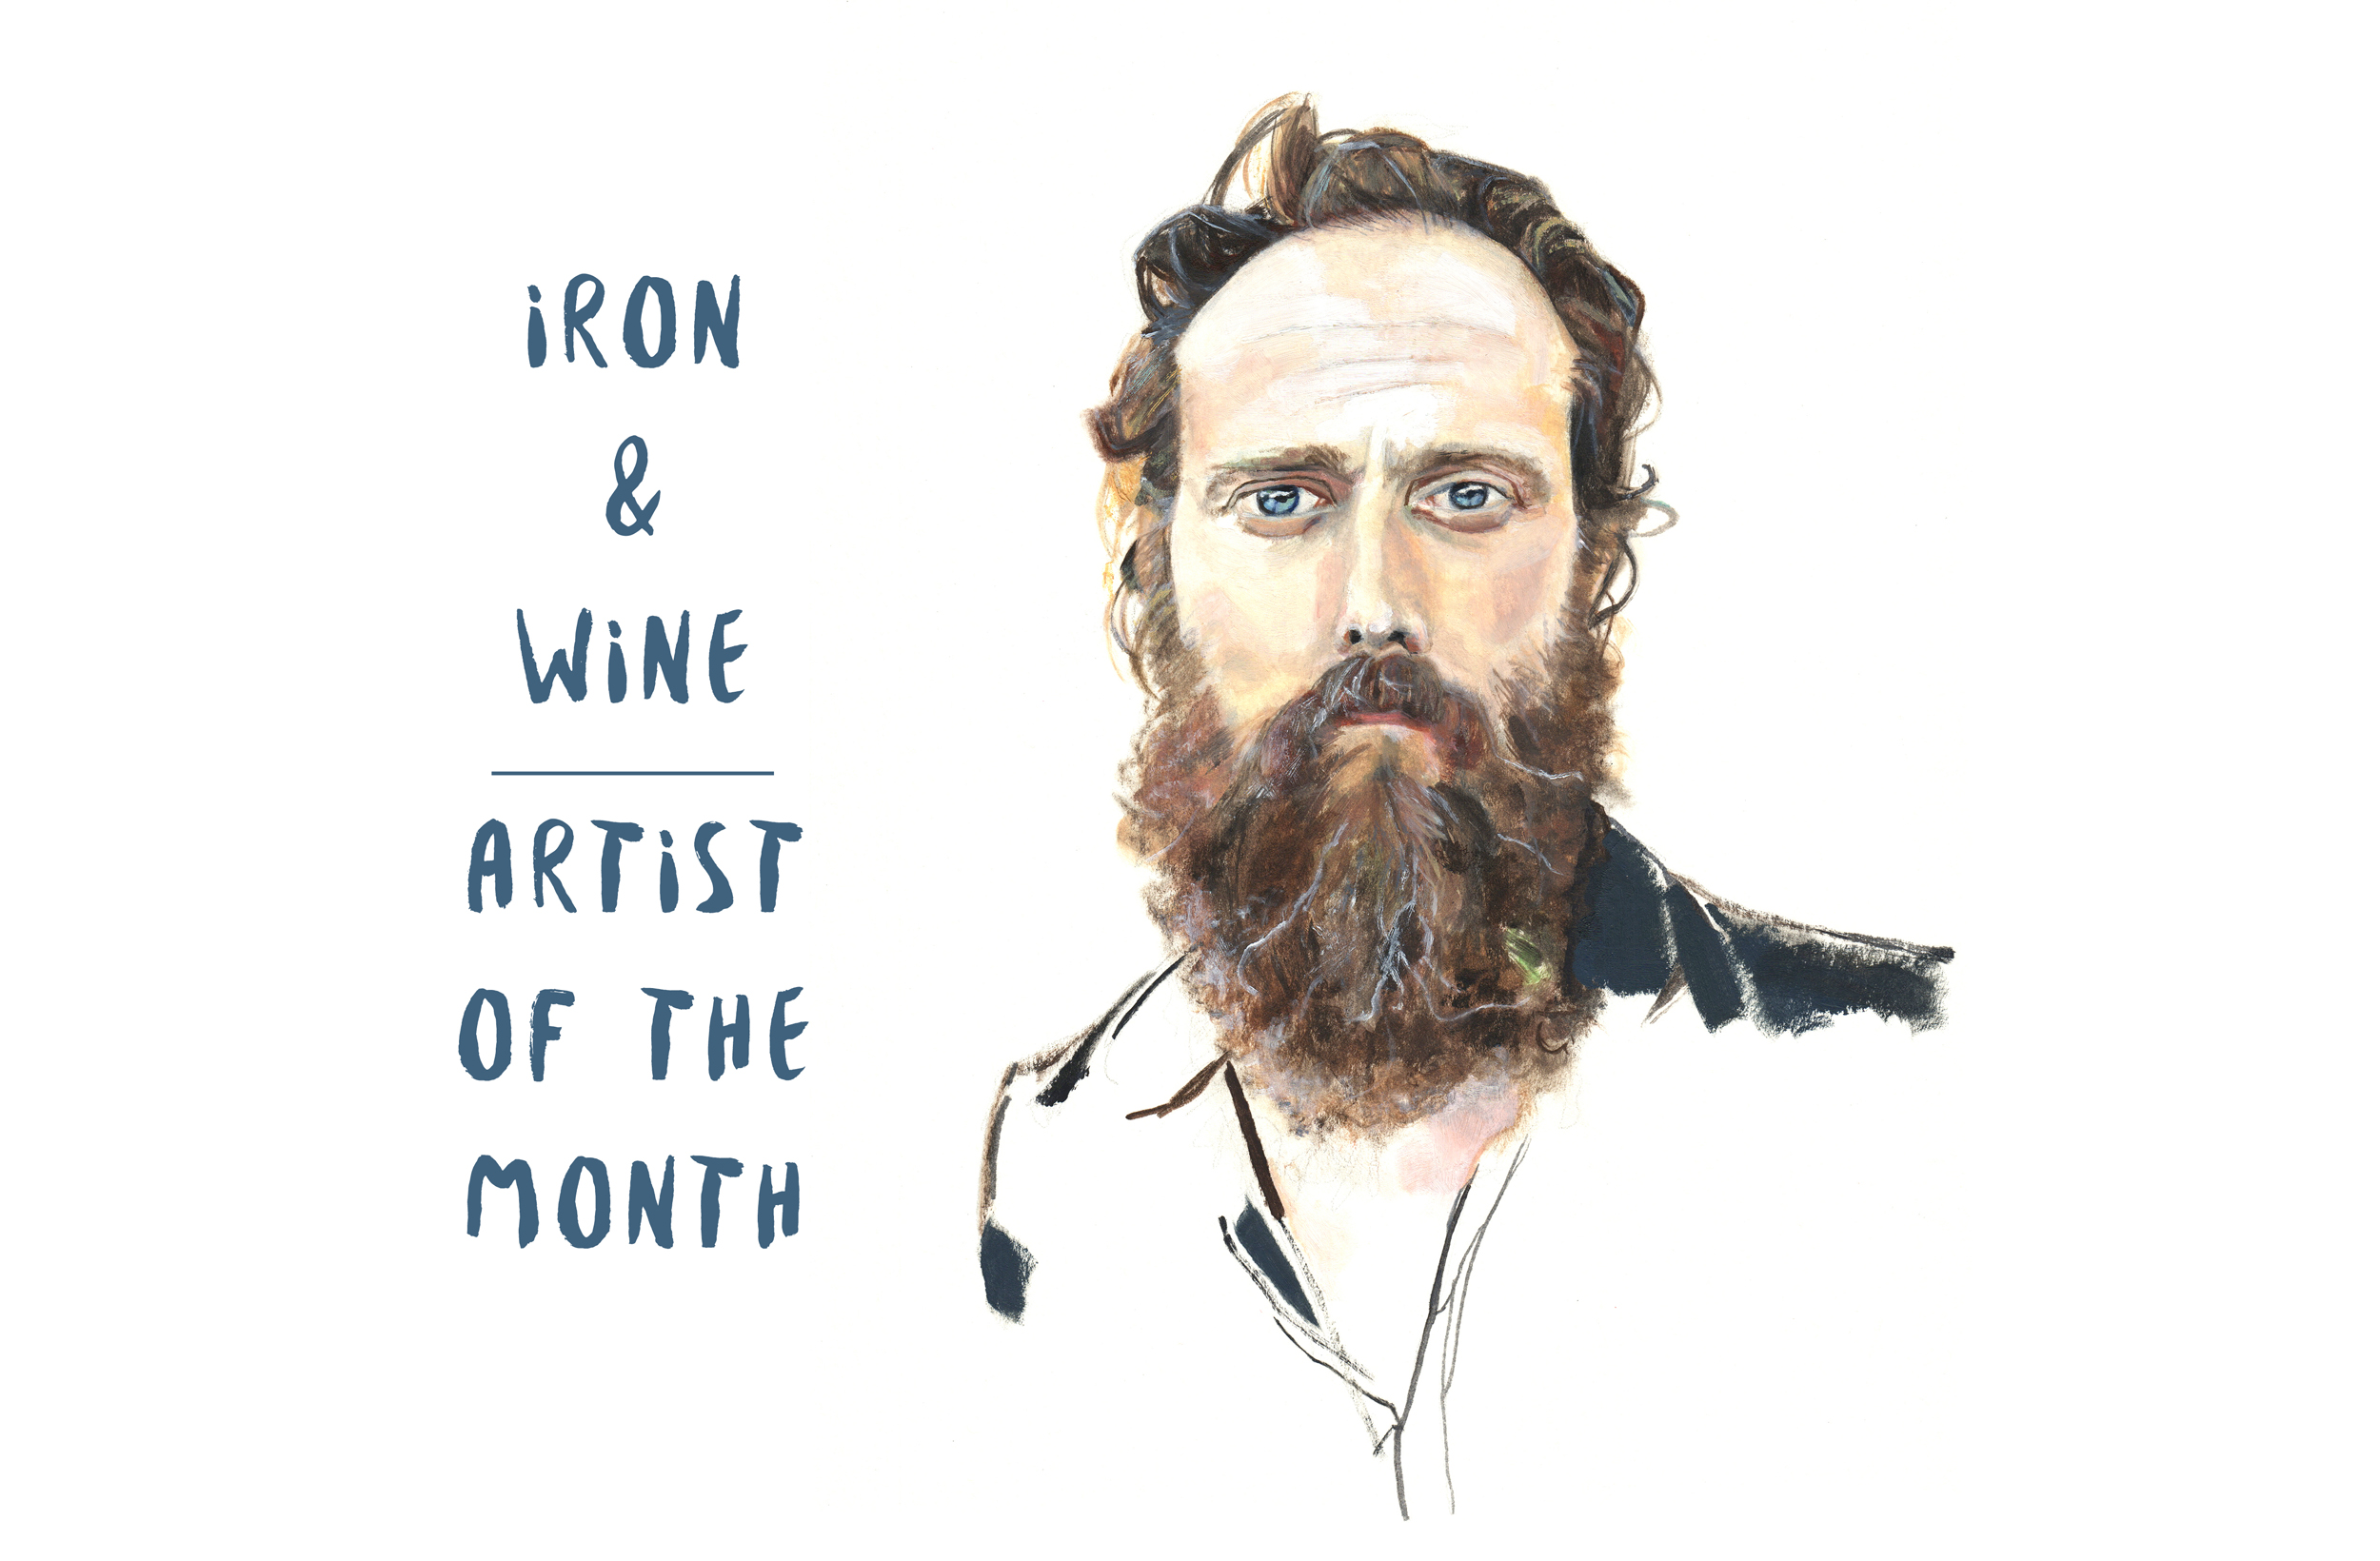 Iron & Wine: Let Go the Reins